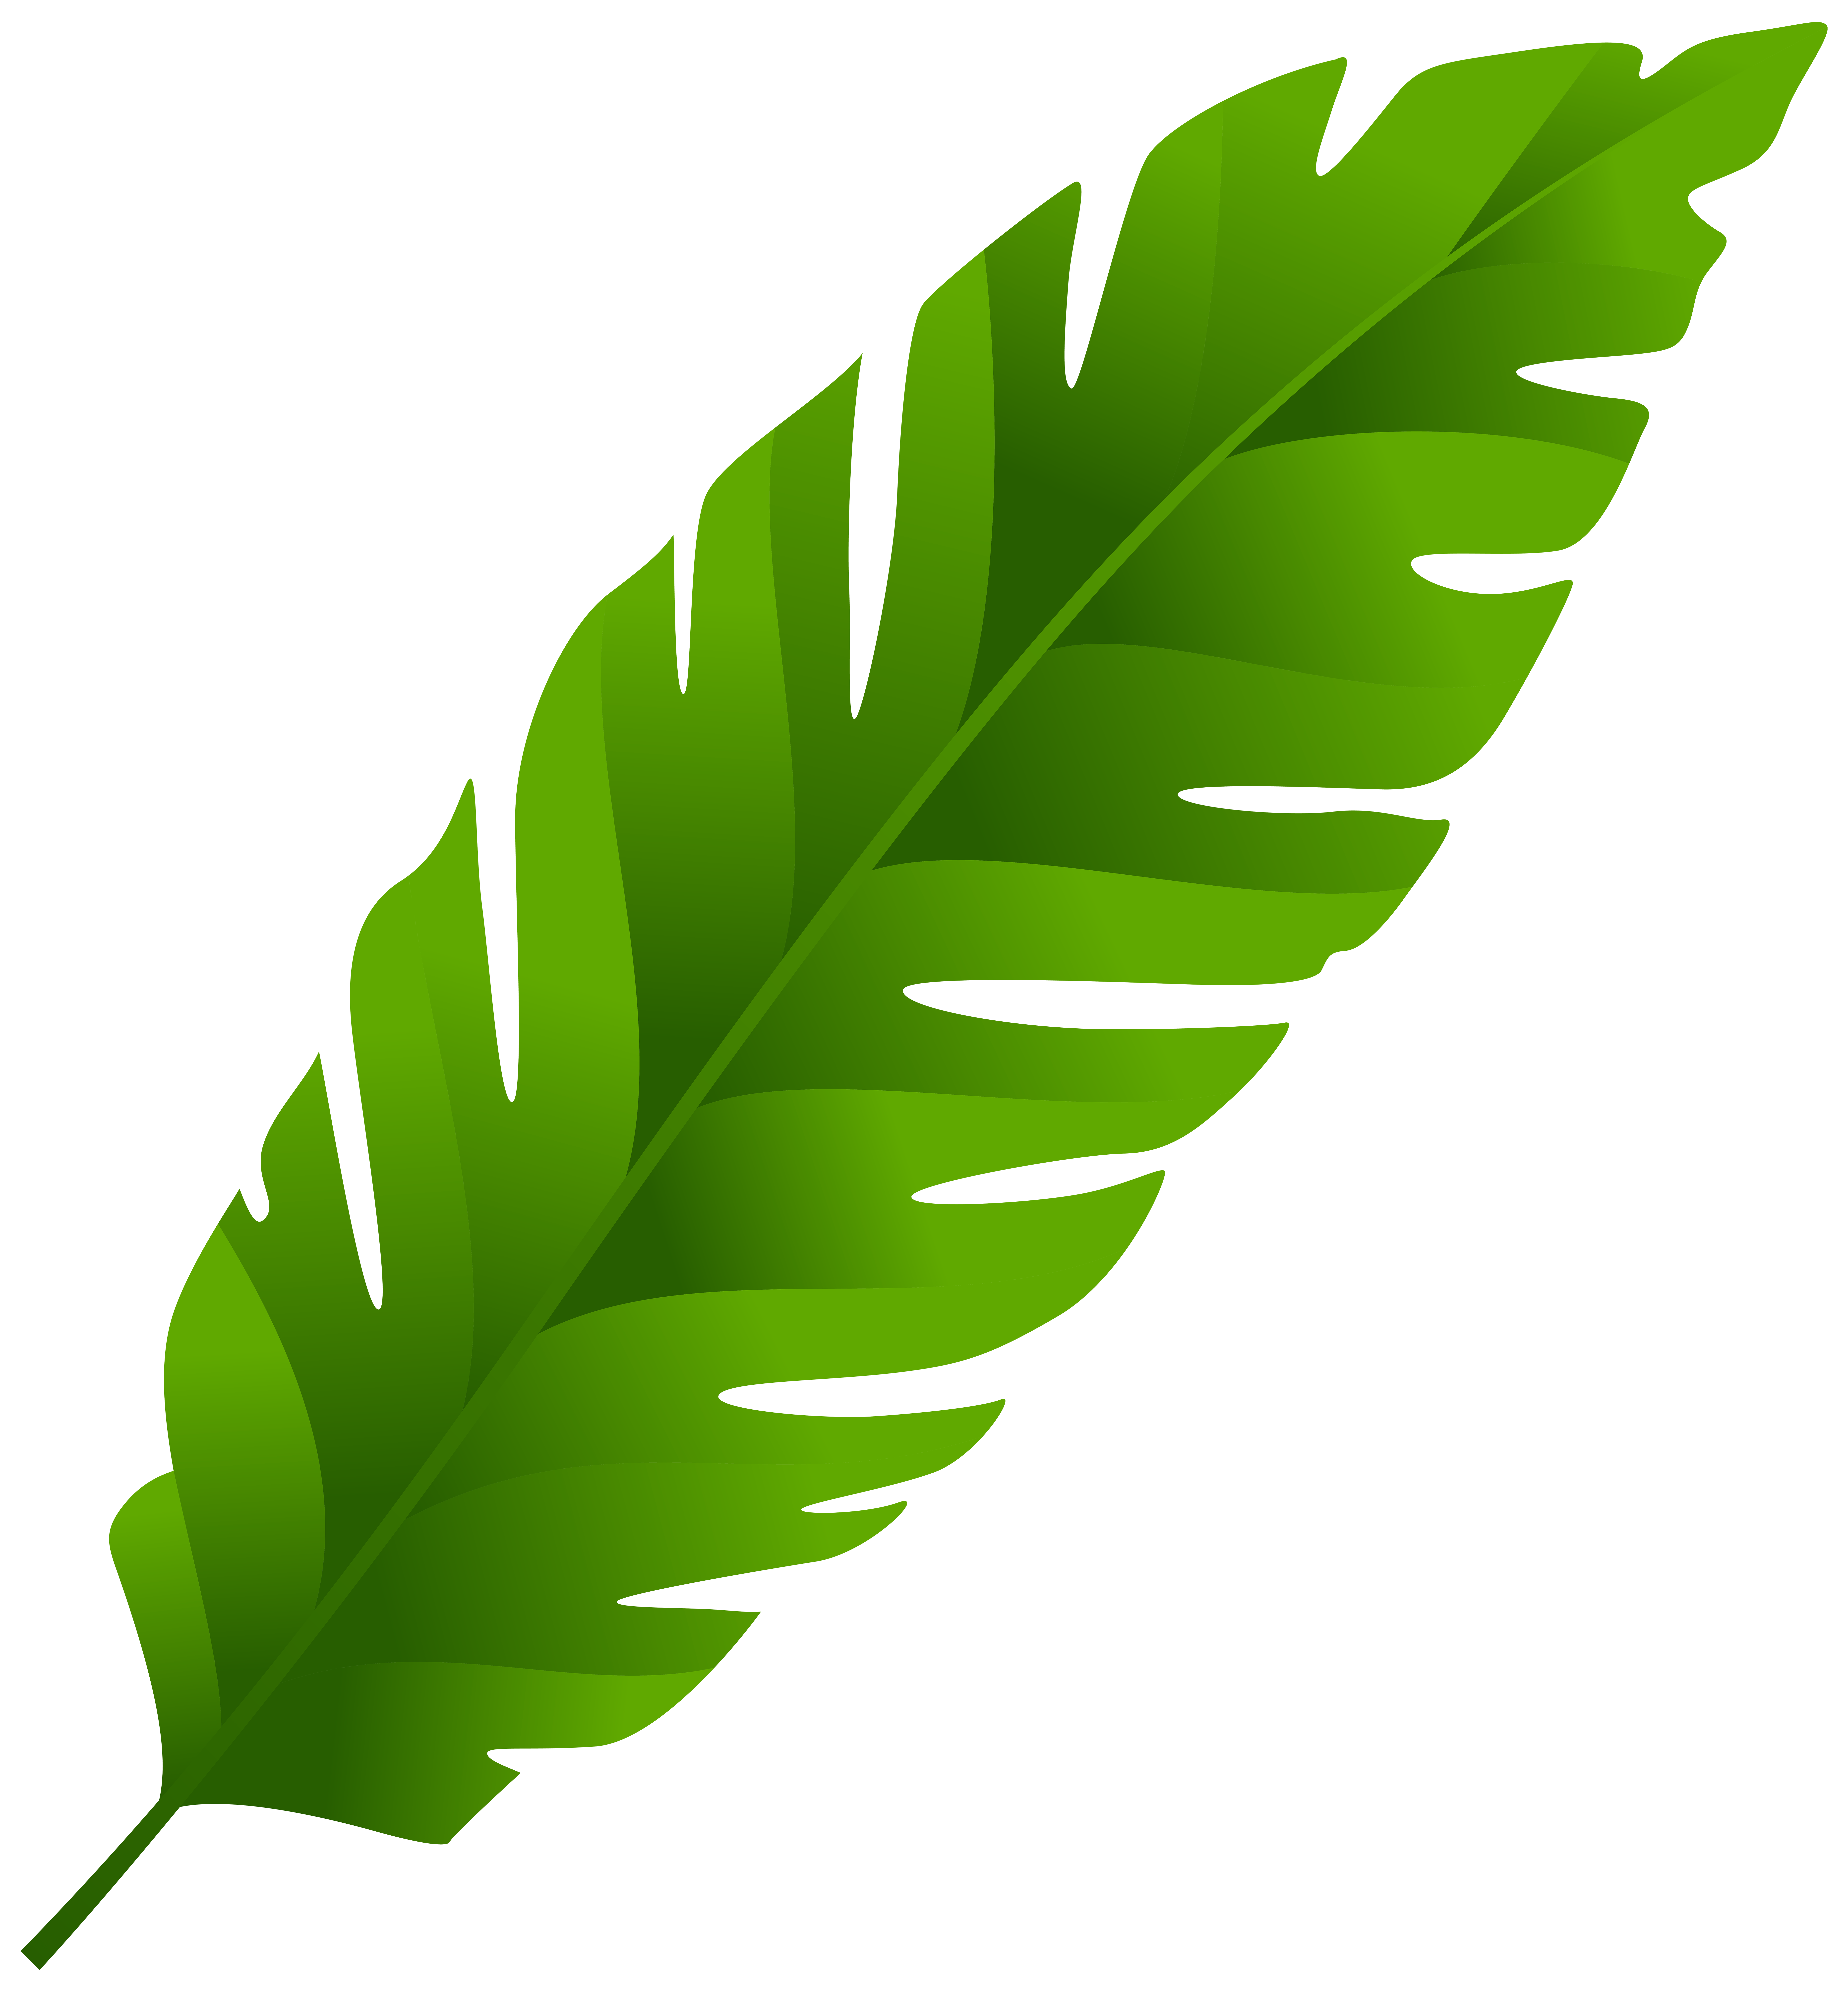 7423x8000 Top 66 Leaf Clip Art Free Clipart Image Leaves Png